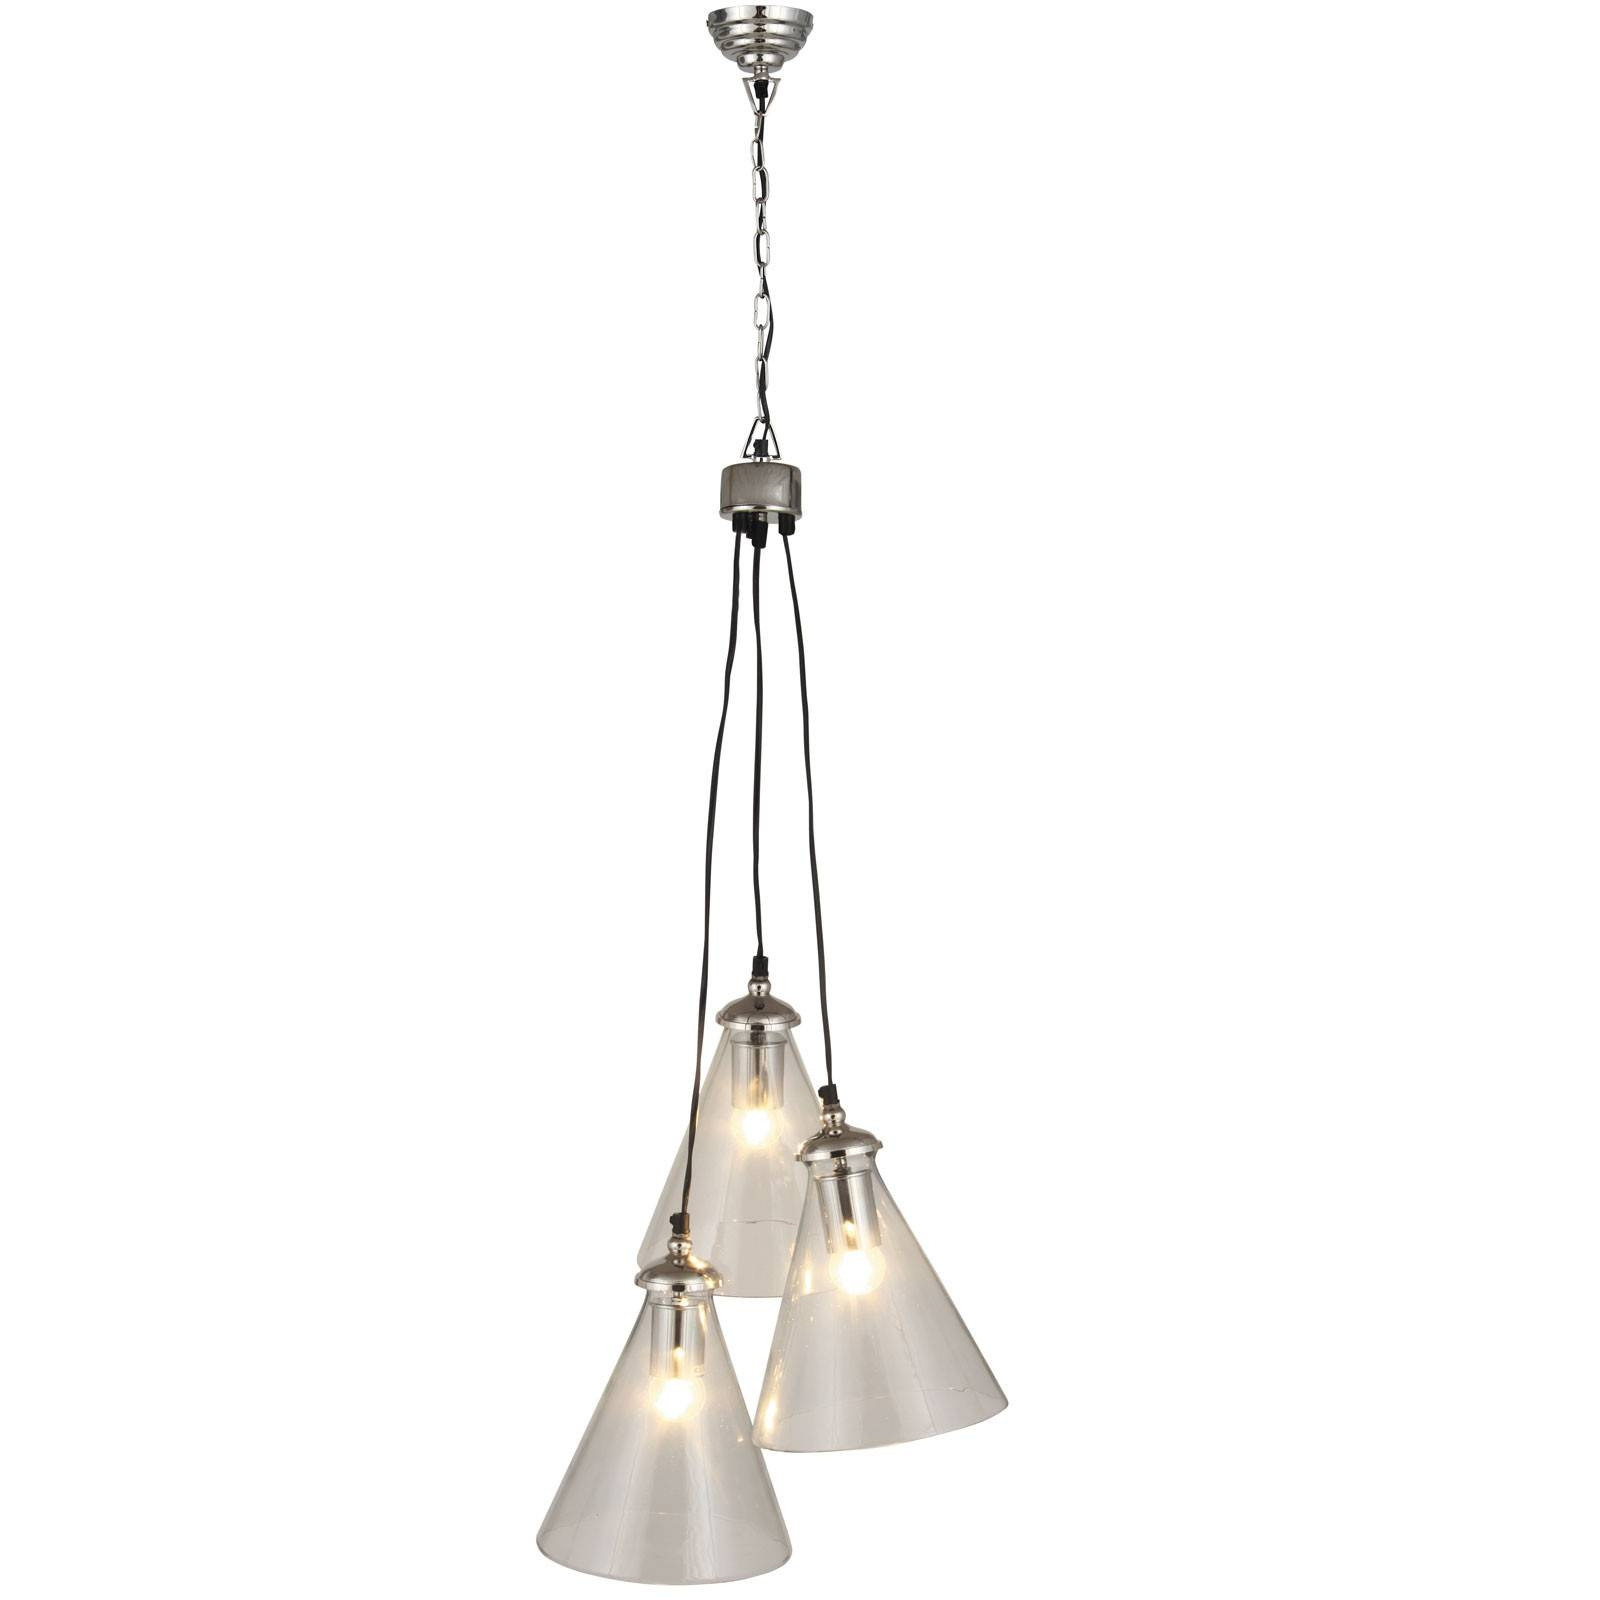 Cone Cluster Glass 3 Light Pendant Light For Cluster Glass Pendant Light Fixtures (View 4 of 15)